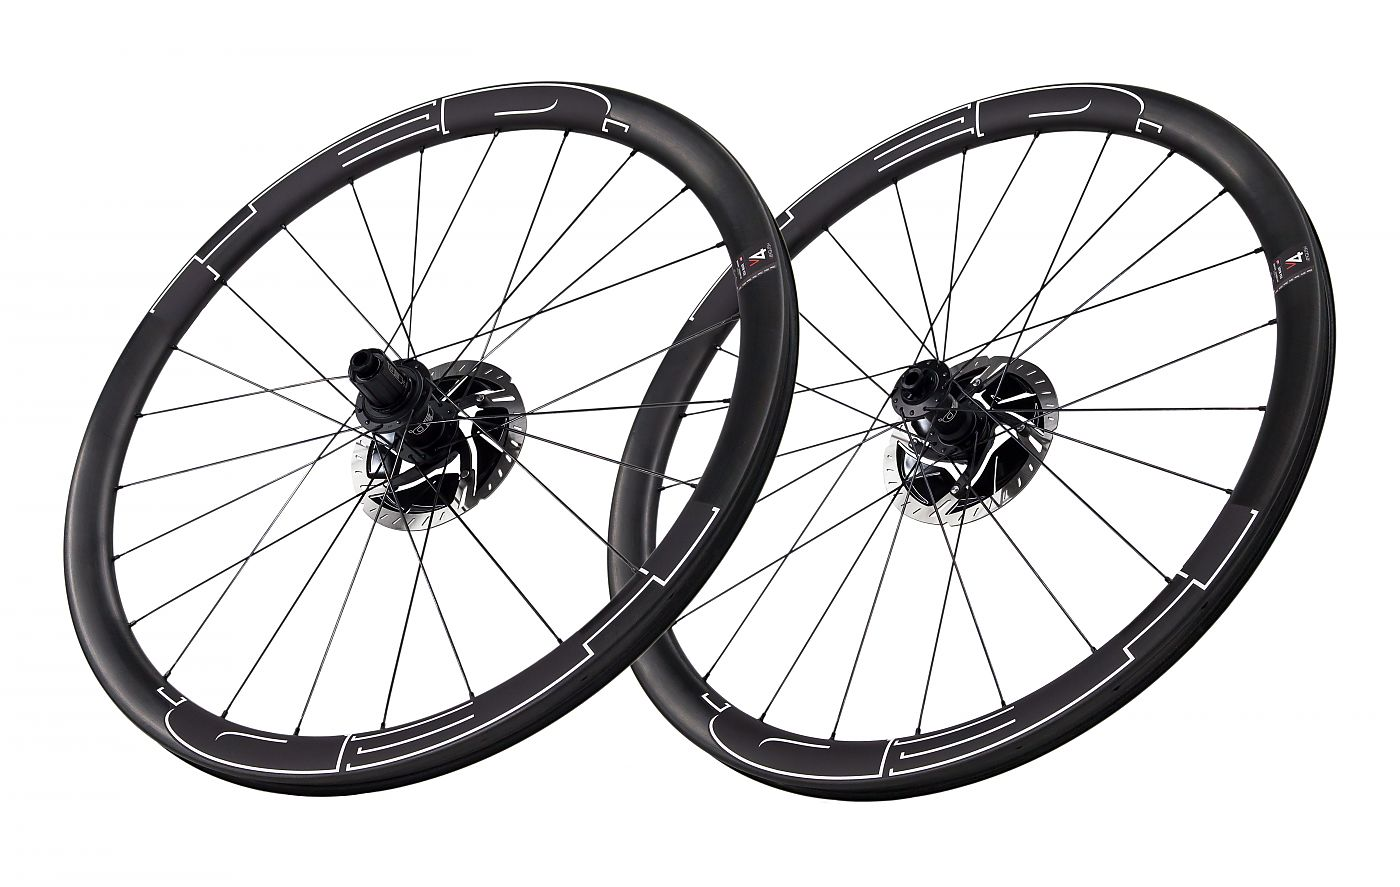 July product intros march on with Hed, WTB and Brose | Bicycle